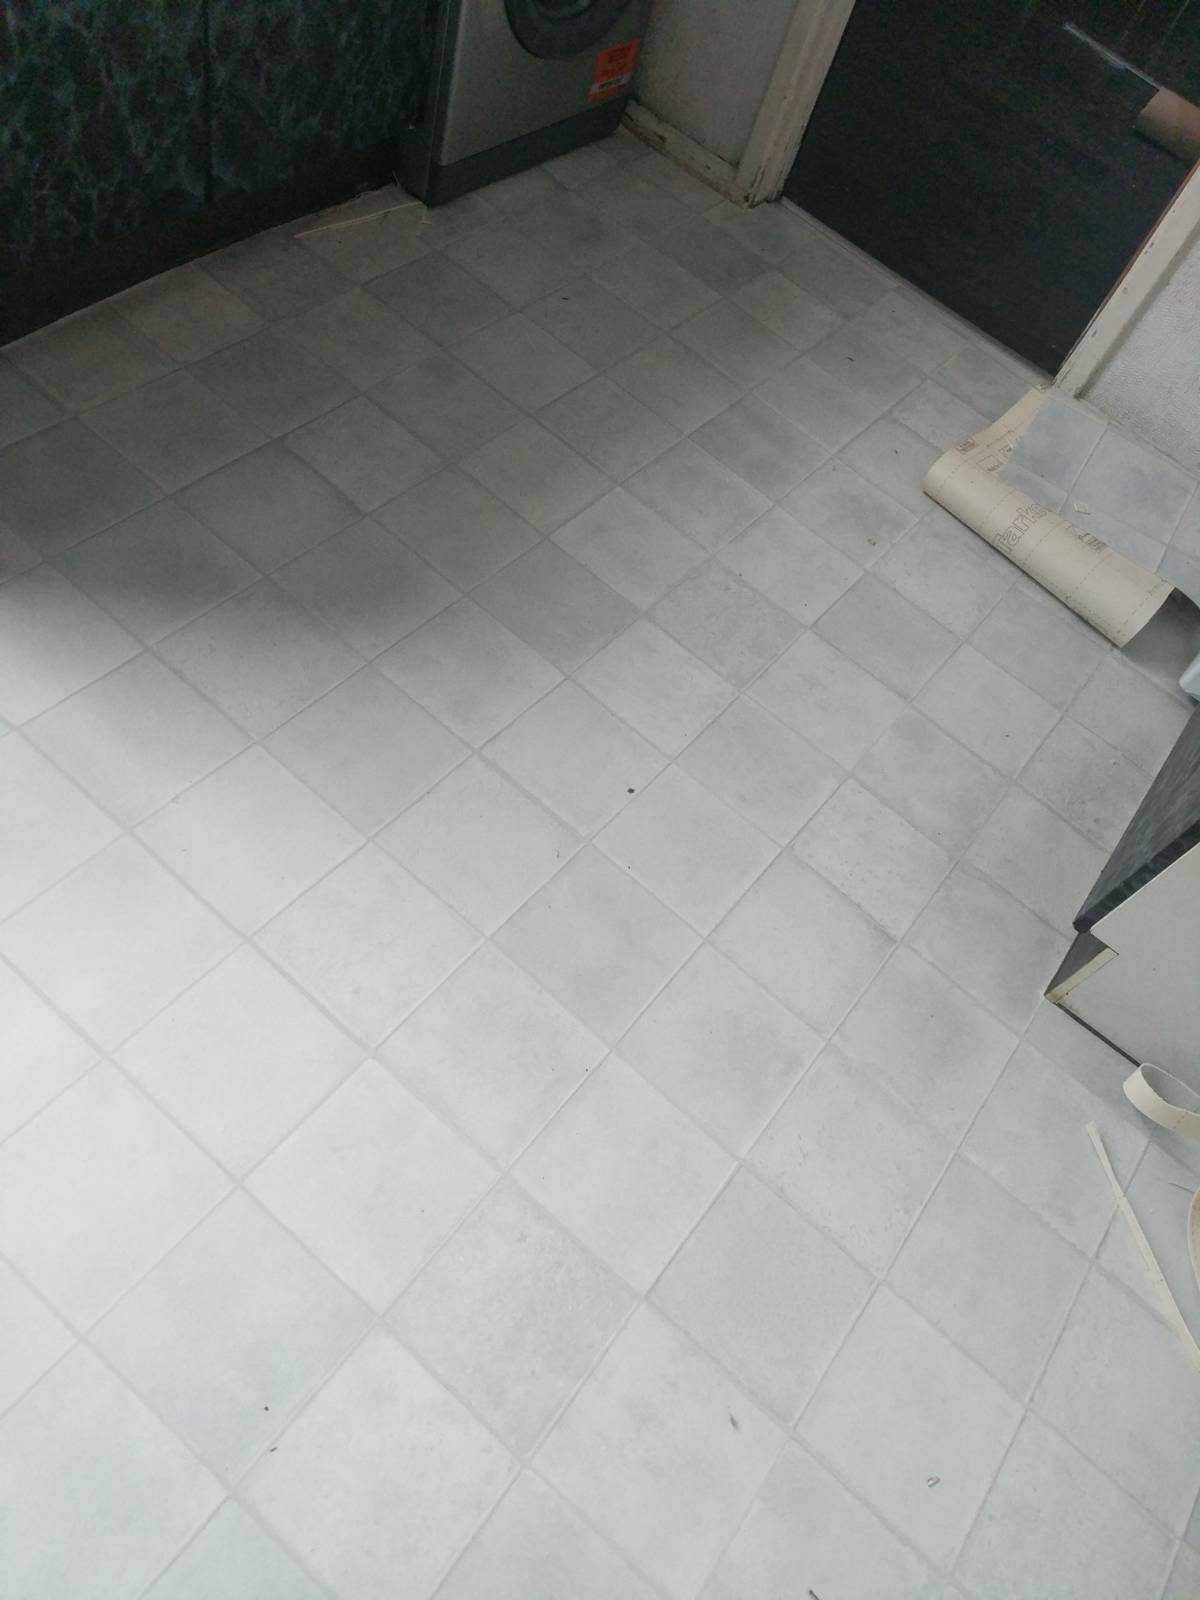 light vinyl flooring with tile design in kitchen